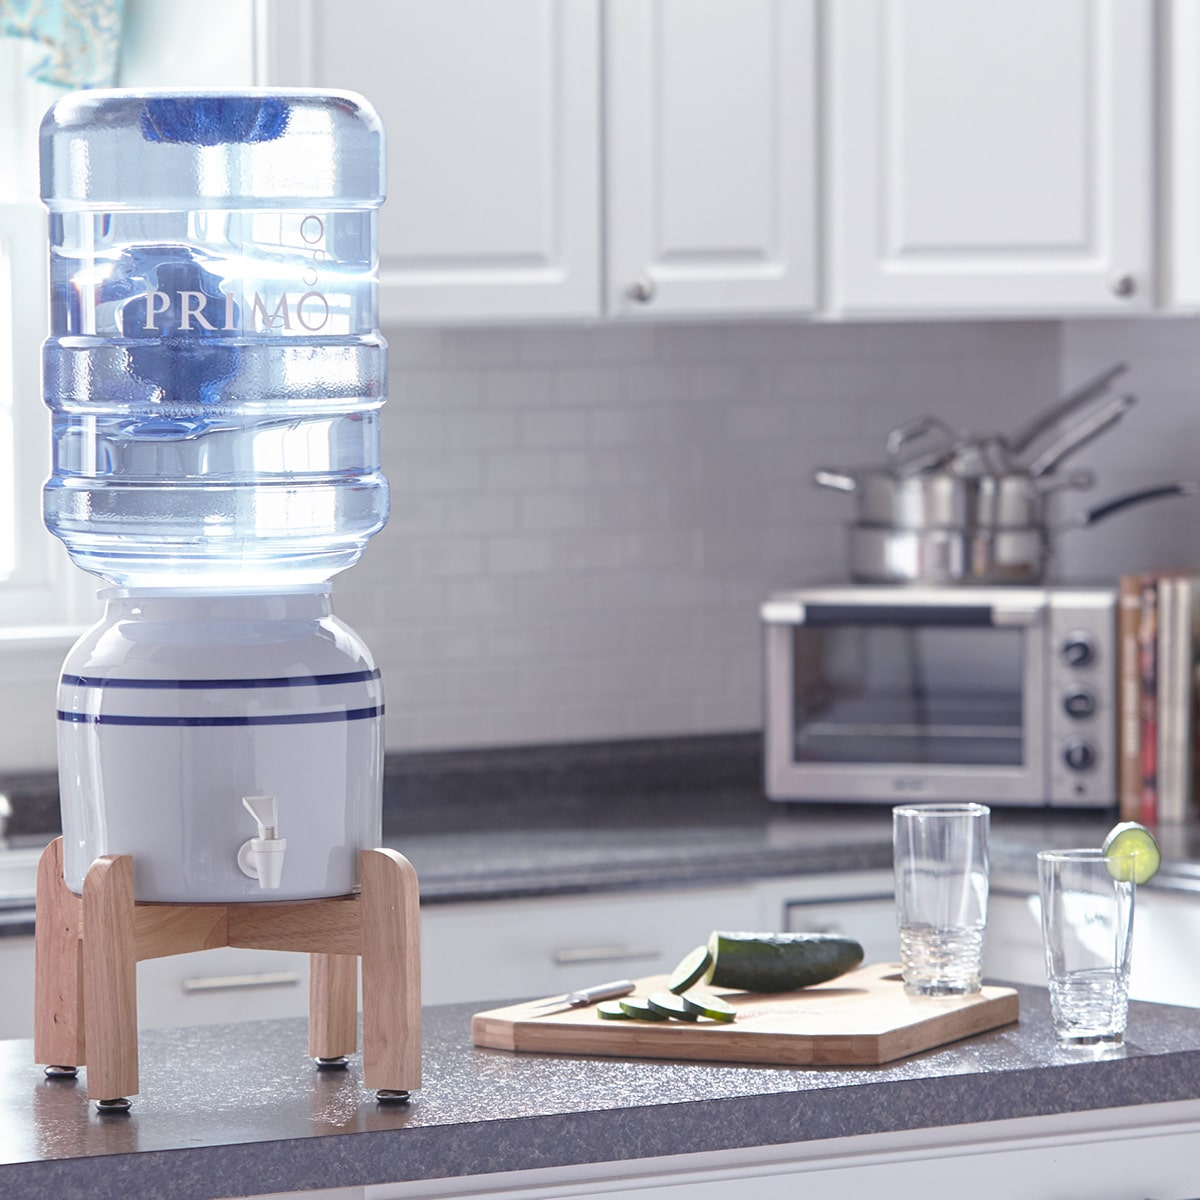 water-dispenser-2